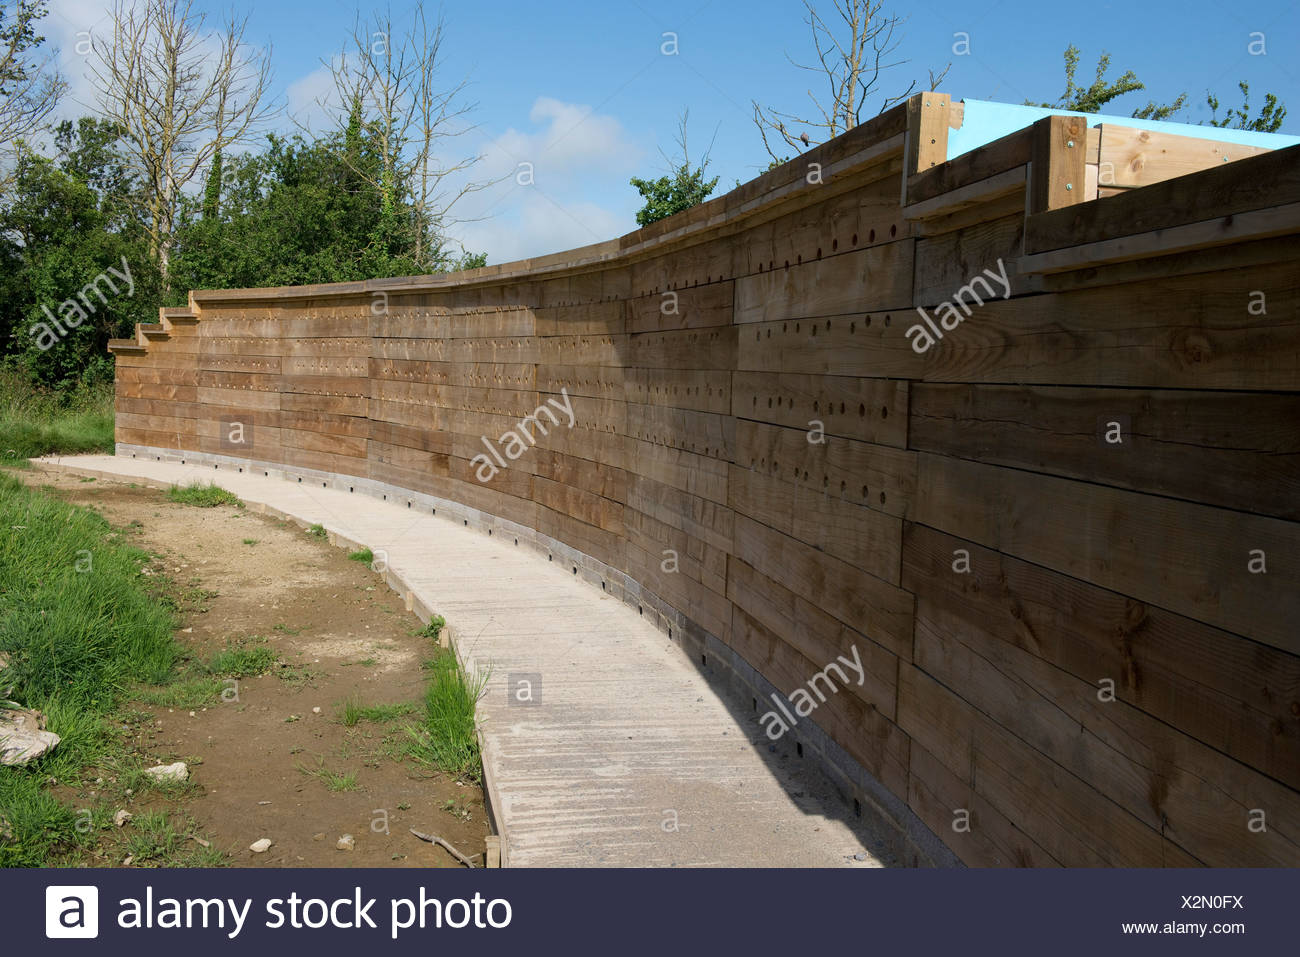 A wooden artificial sand martin bank and bat roost at the East Devon Axe Estuary Wetlands Nature Reserve near Seaton in Devon - Stock Image